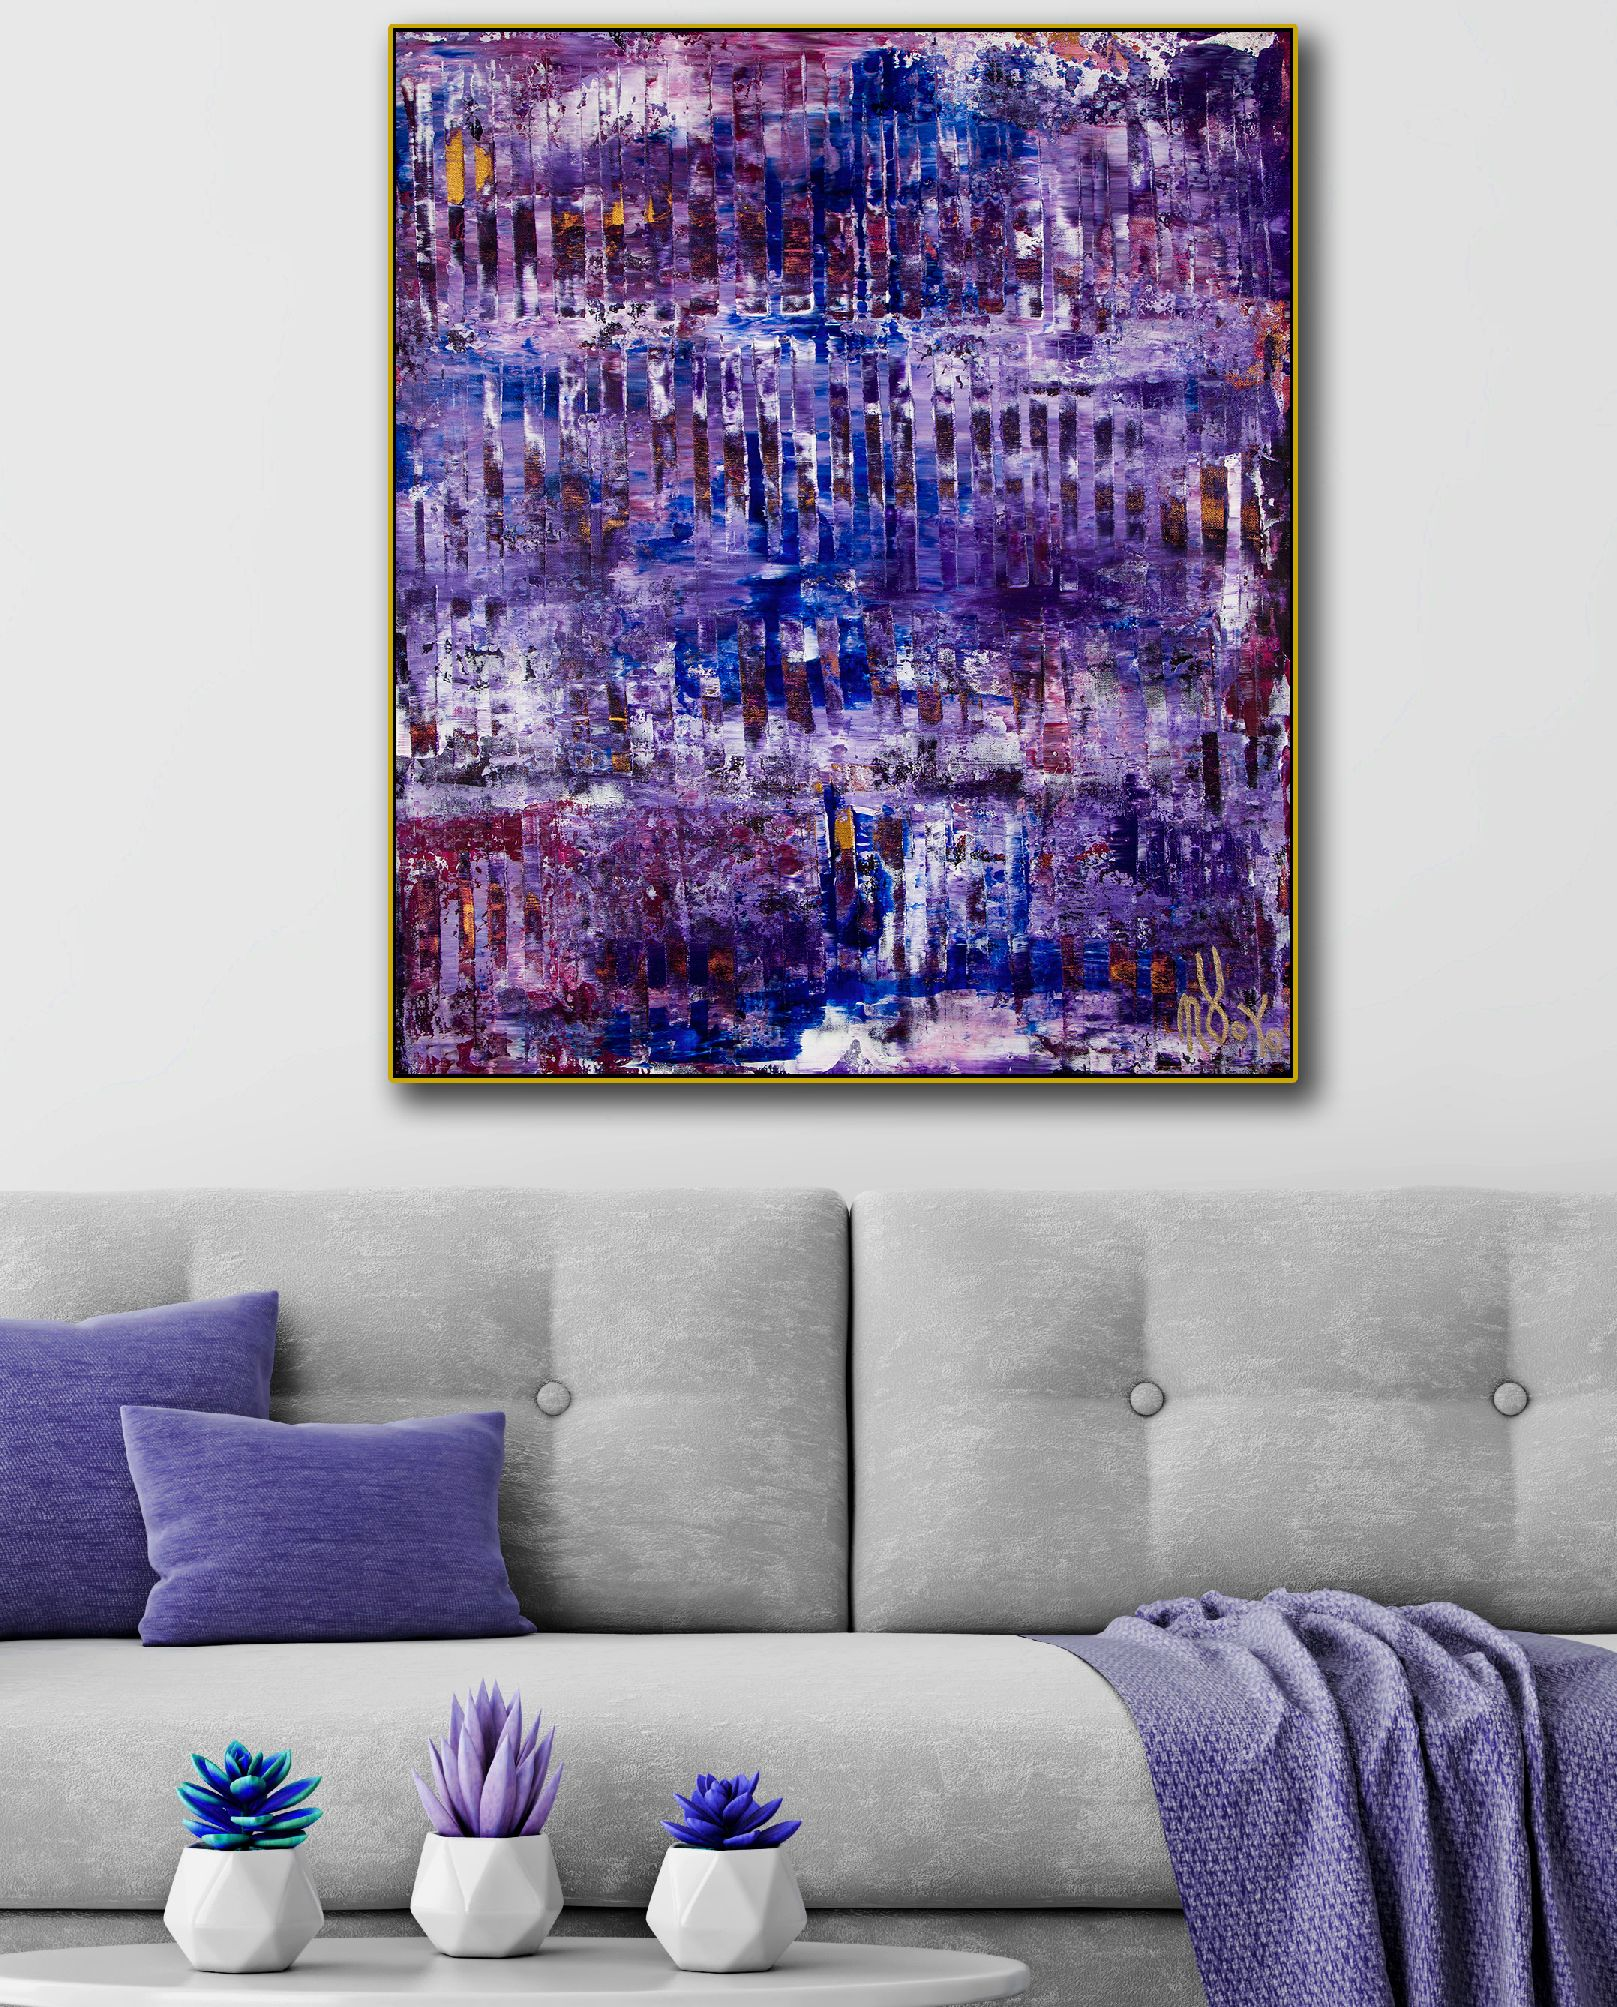 Room View - Chaos and Lights 2 (2020) by Nestor Toro